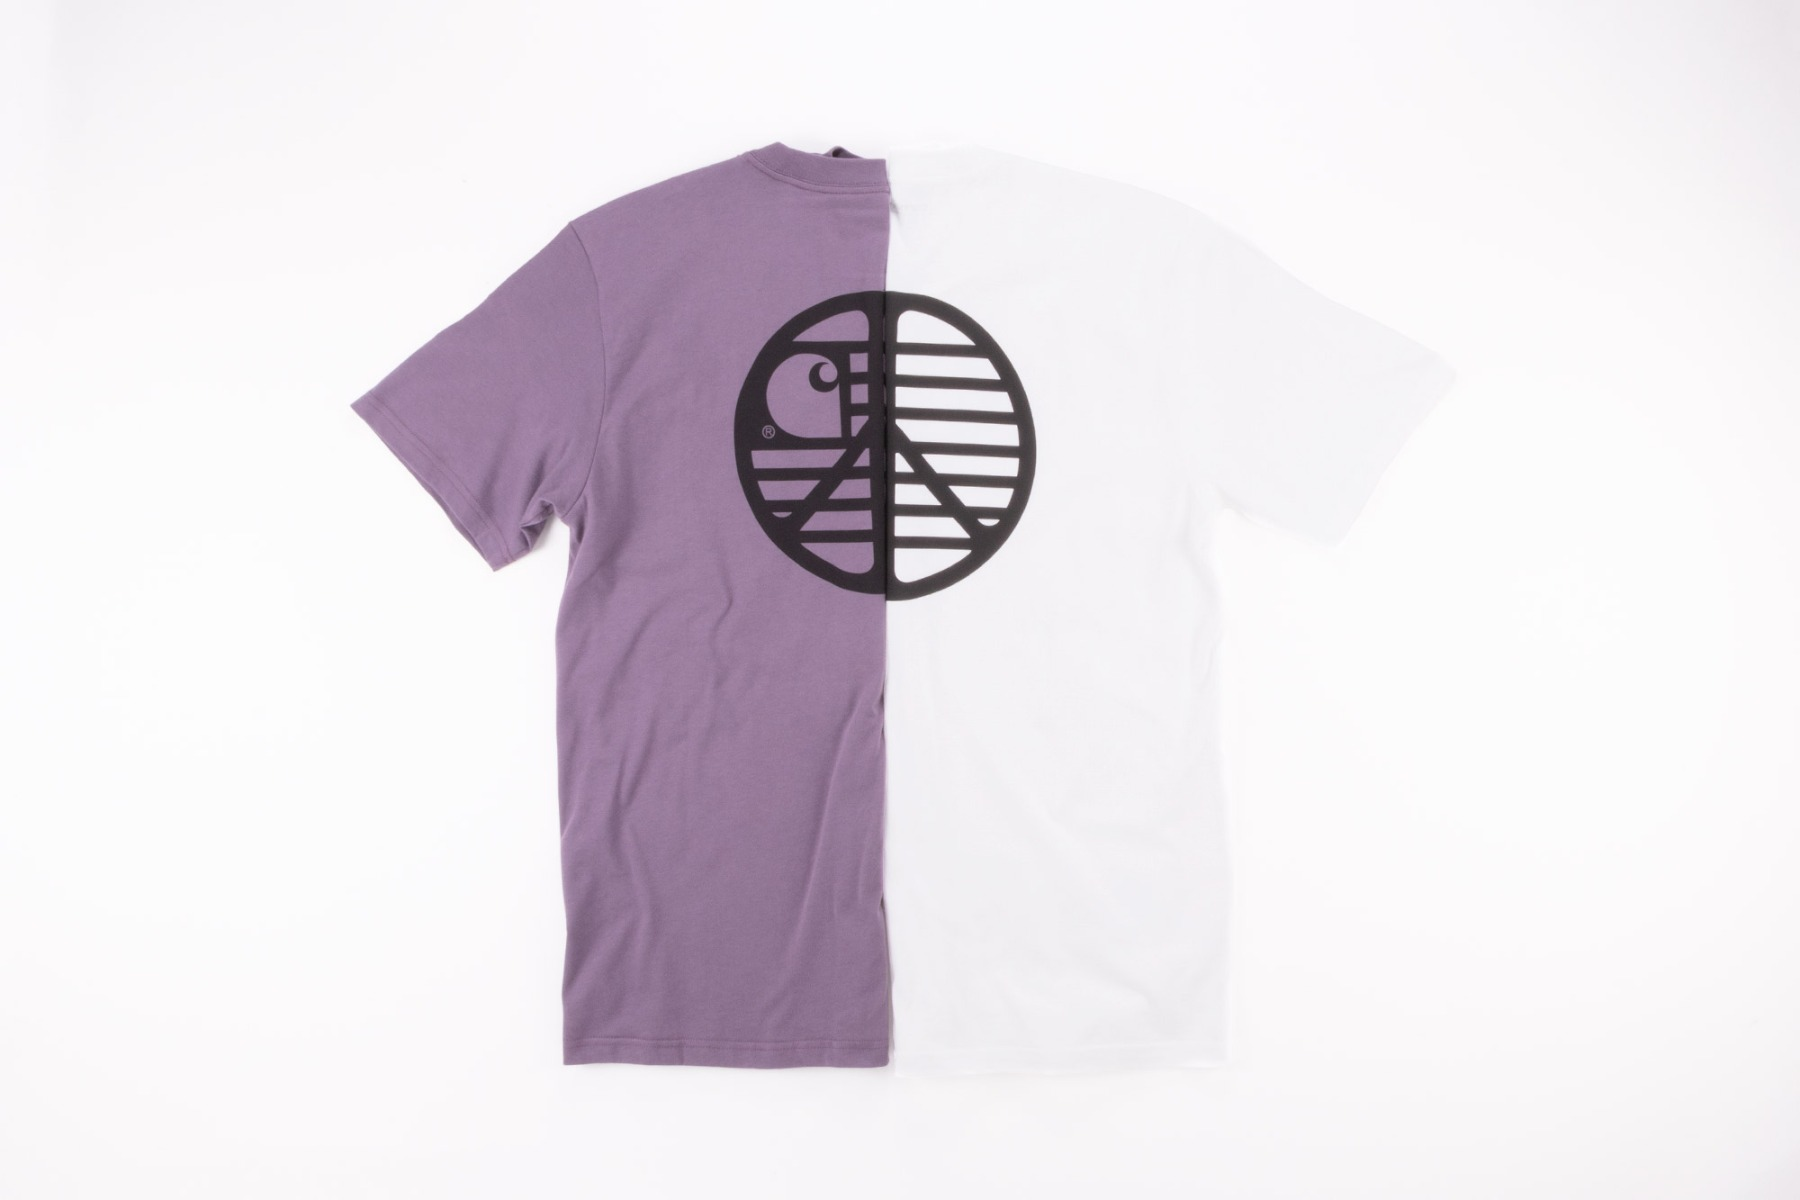 carhartt wip peace state graphic t-shirt in white and provence available at wellgosh